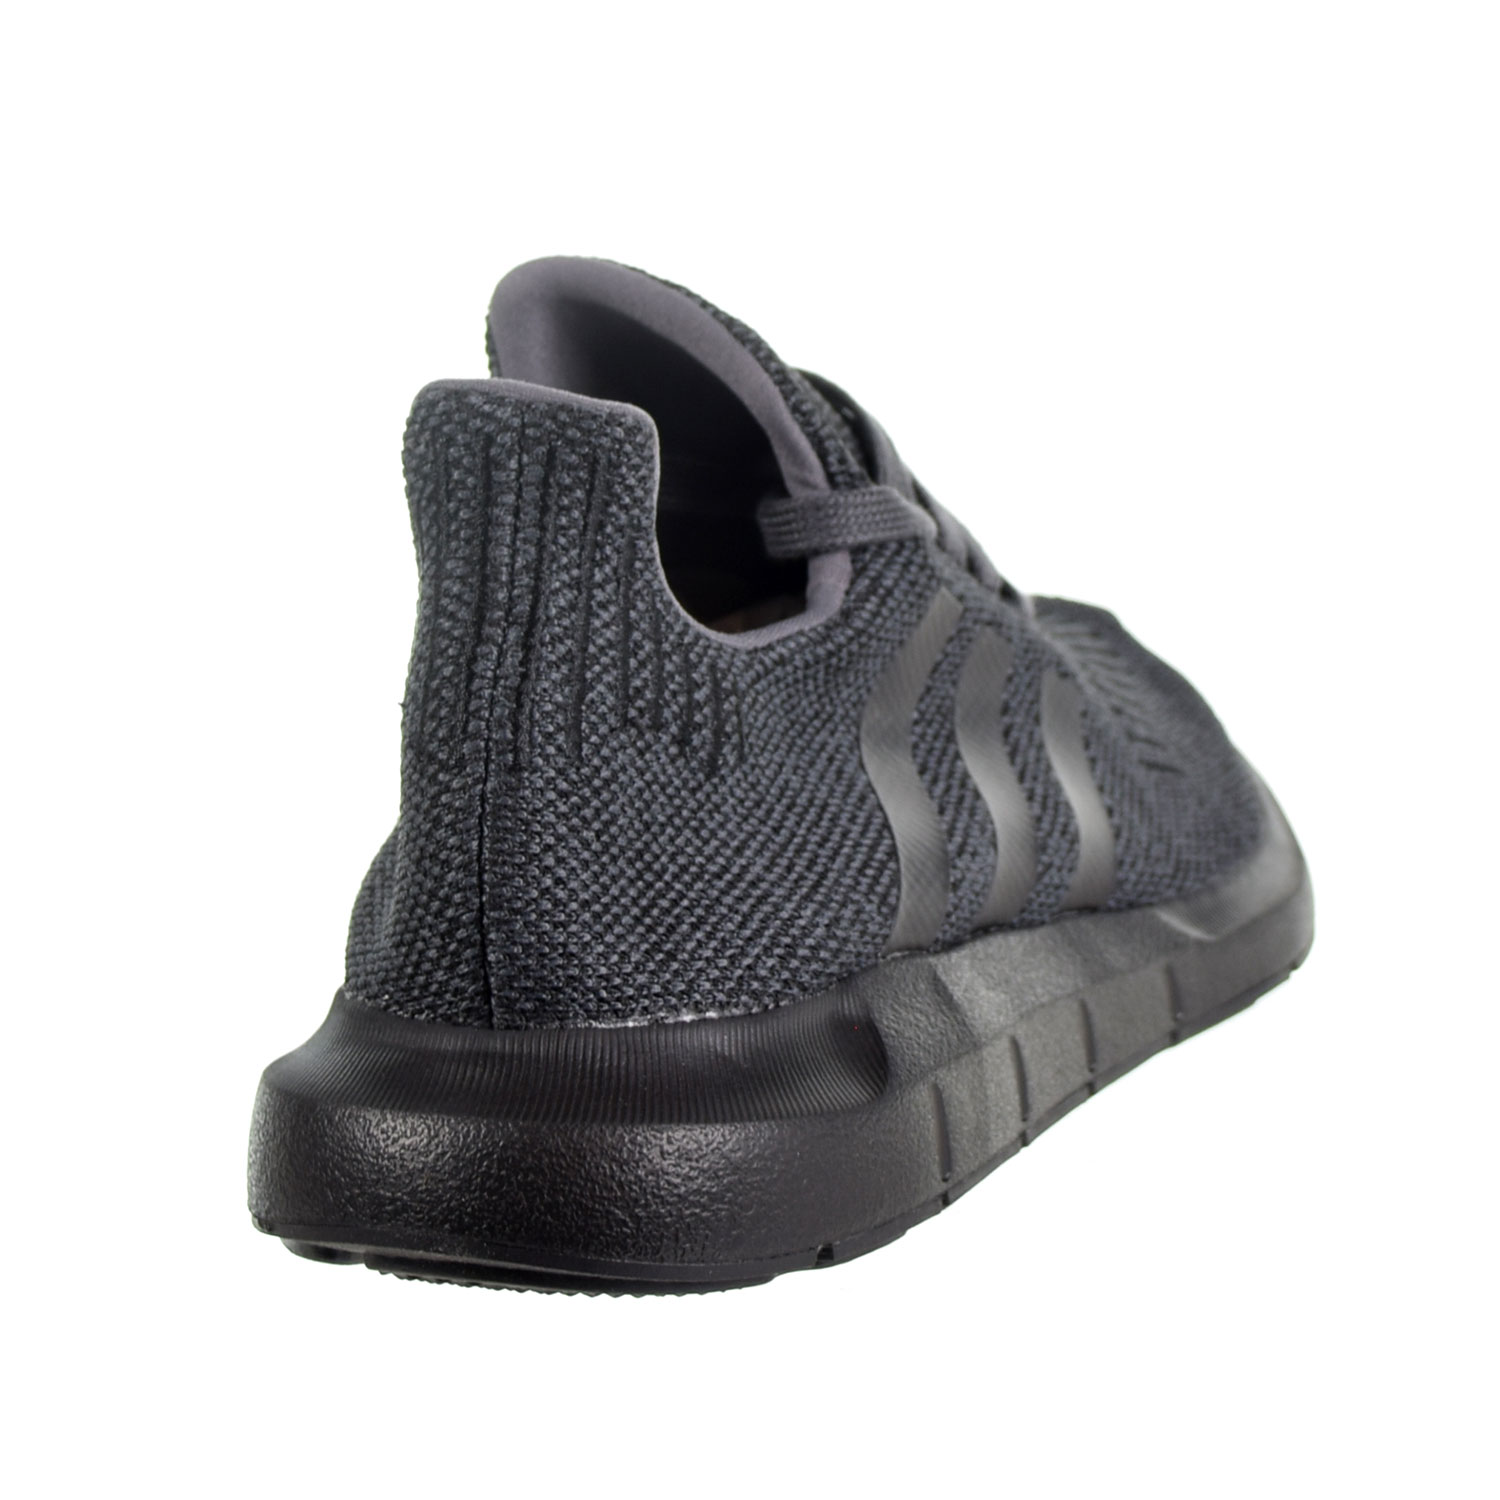 hot sales 0801f a7fe1 Adidas Originals Swift Run Men s Shoes Grey Five Core Black ac7164